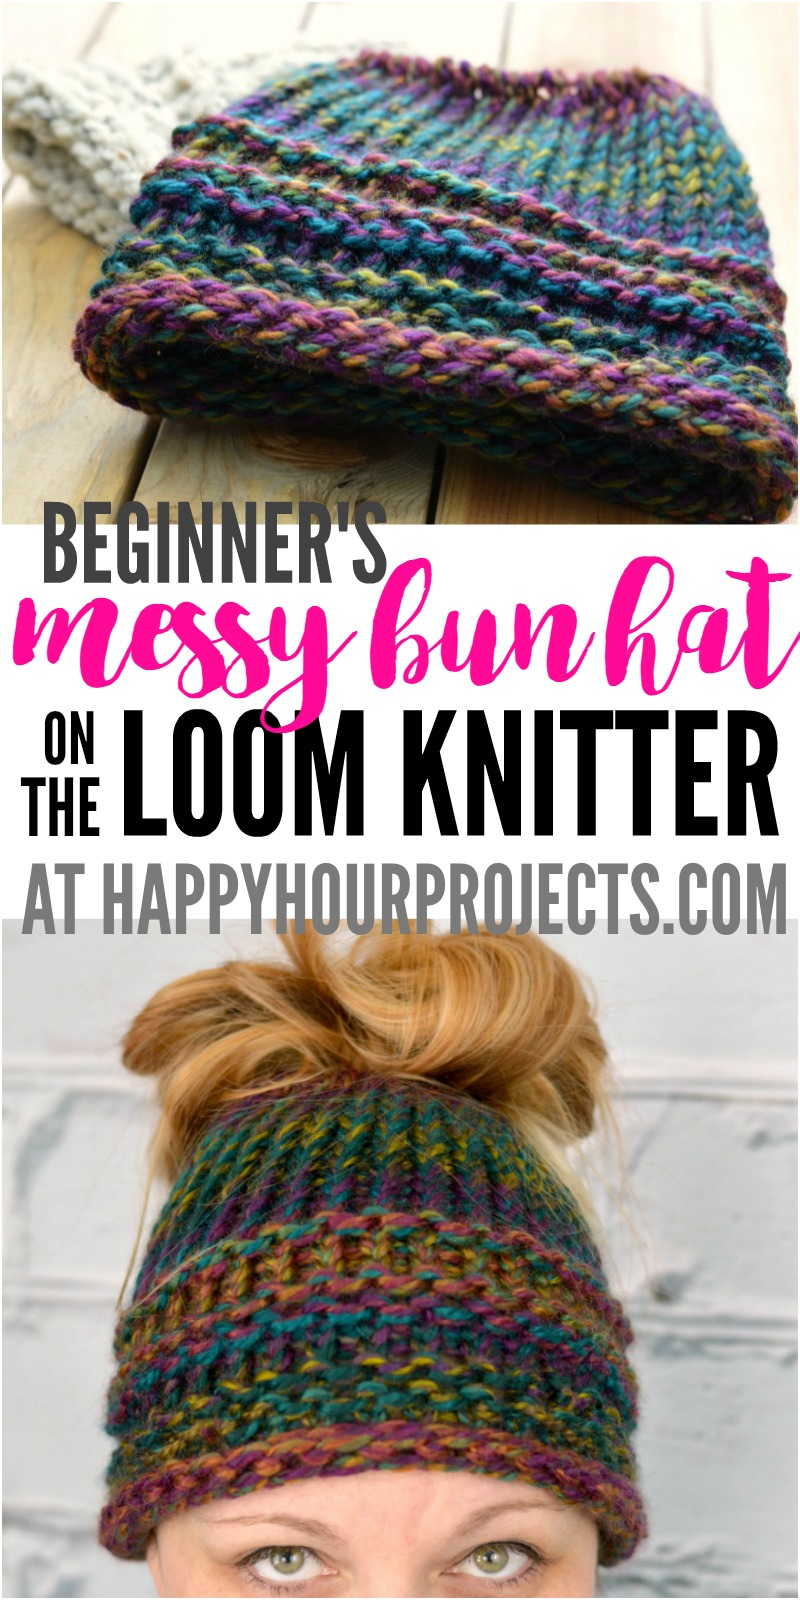 loom knitting patterns beginners messy bun hat using the loom knitter at happyhourprojects.com |  2-hour alfpjcd